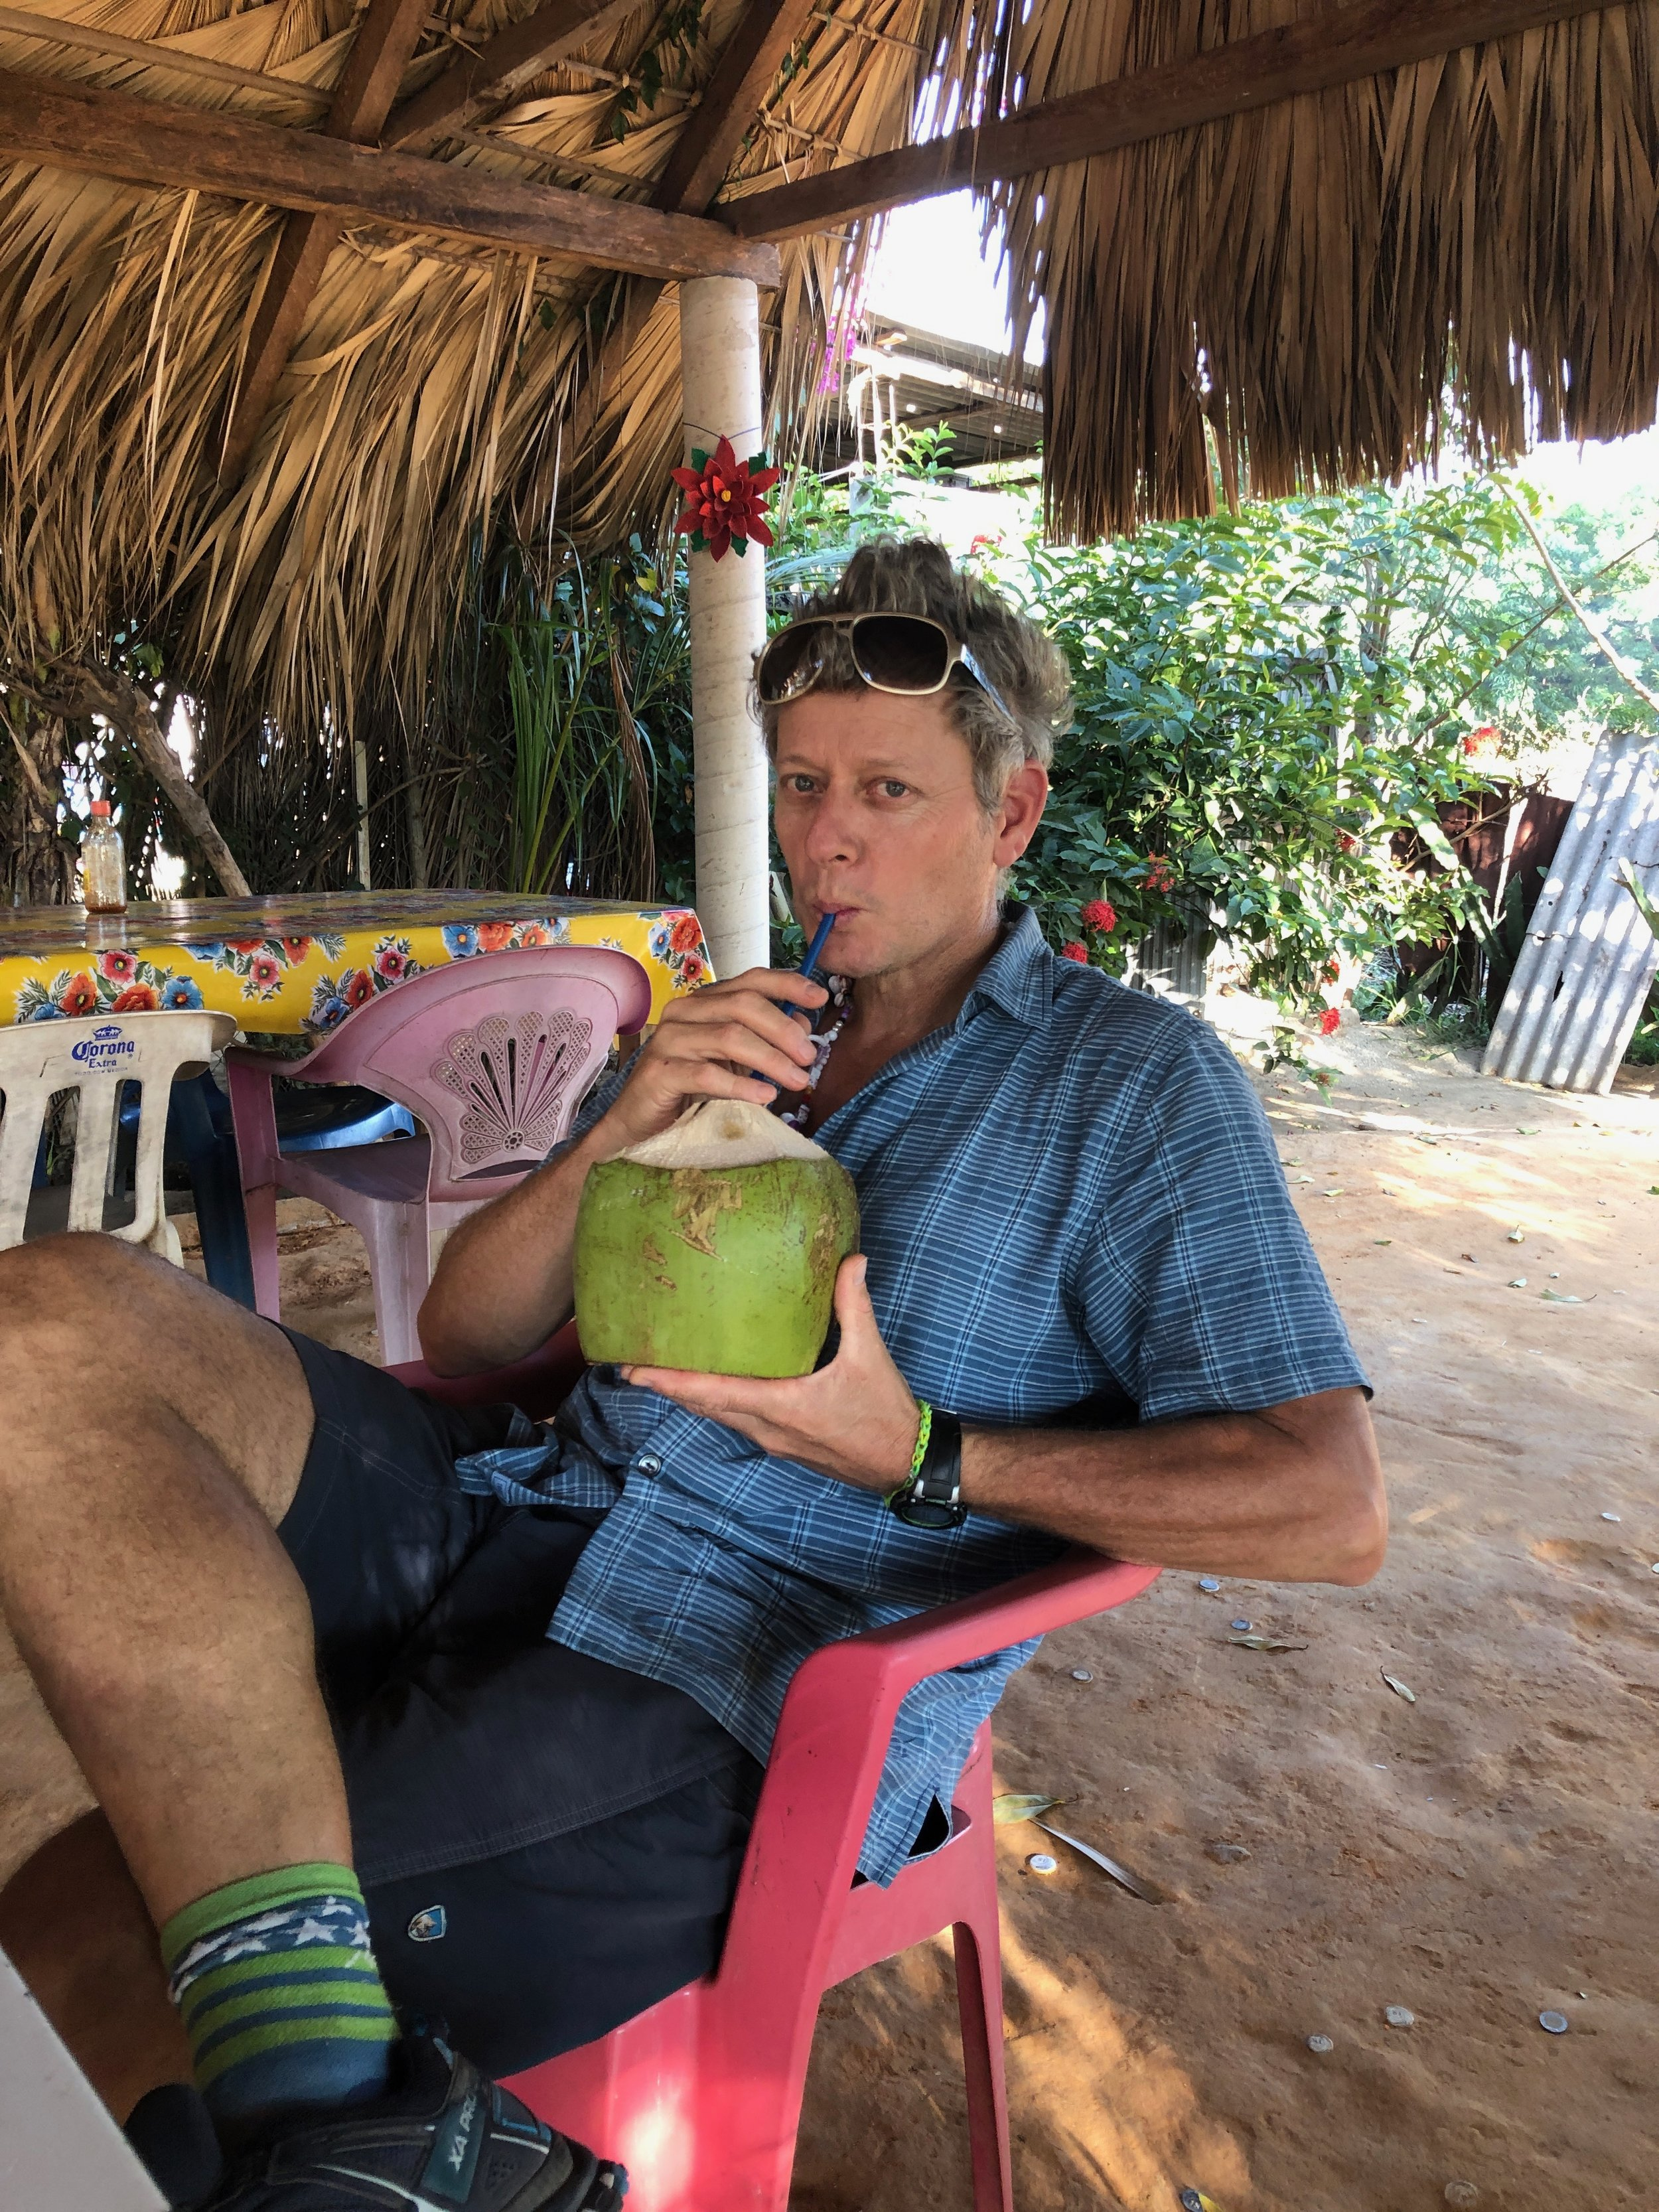 John sipping a coco frio (cold coconut water). We stopped to stretch our legs and get a refreshing drink once we hit the main highway. These cocos may have been the best of the whole trip!